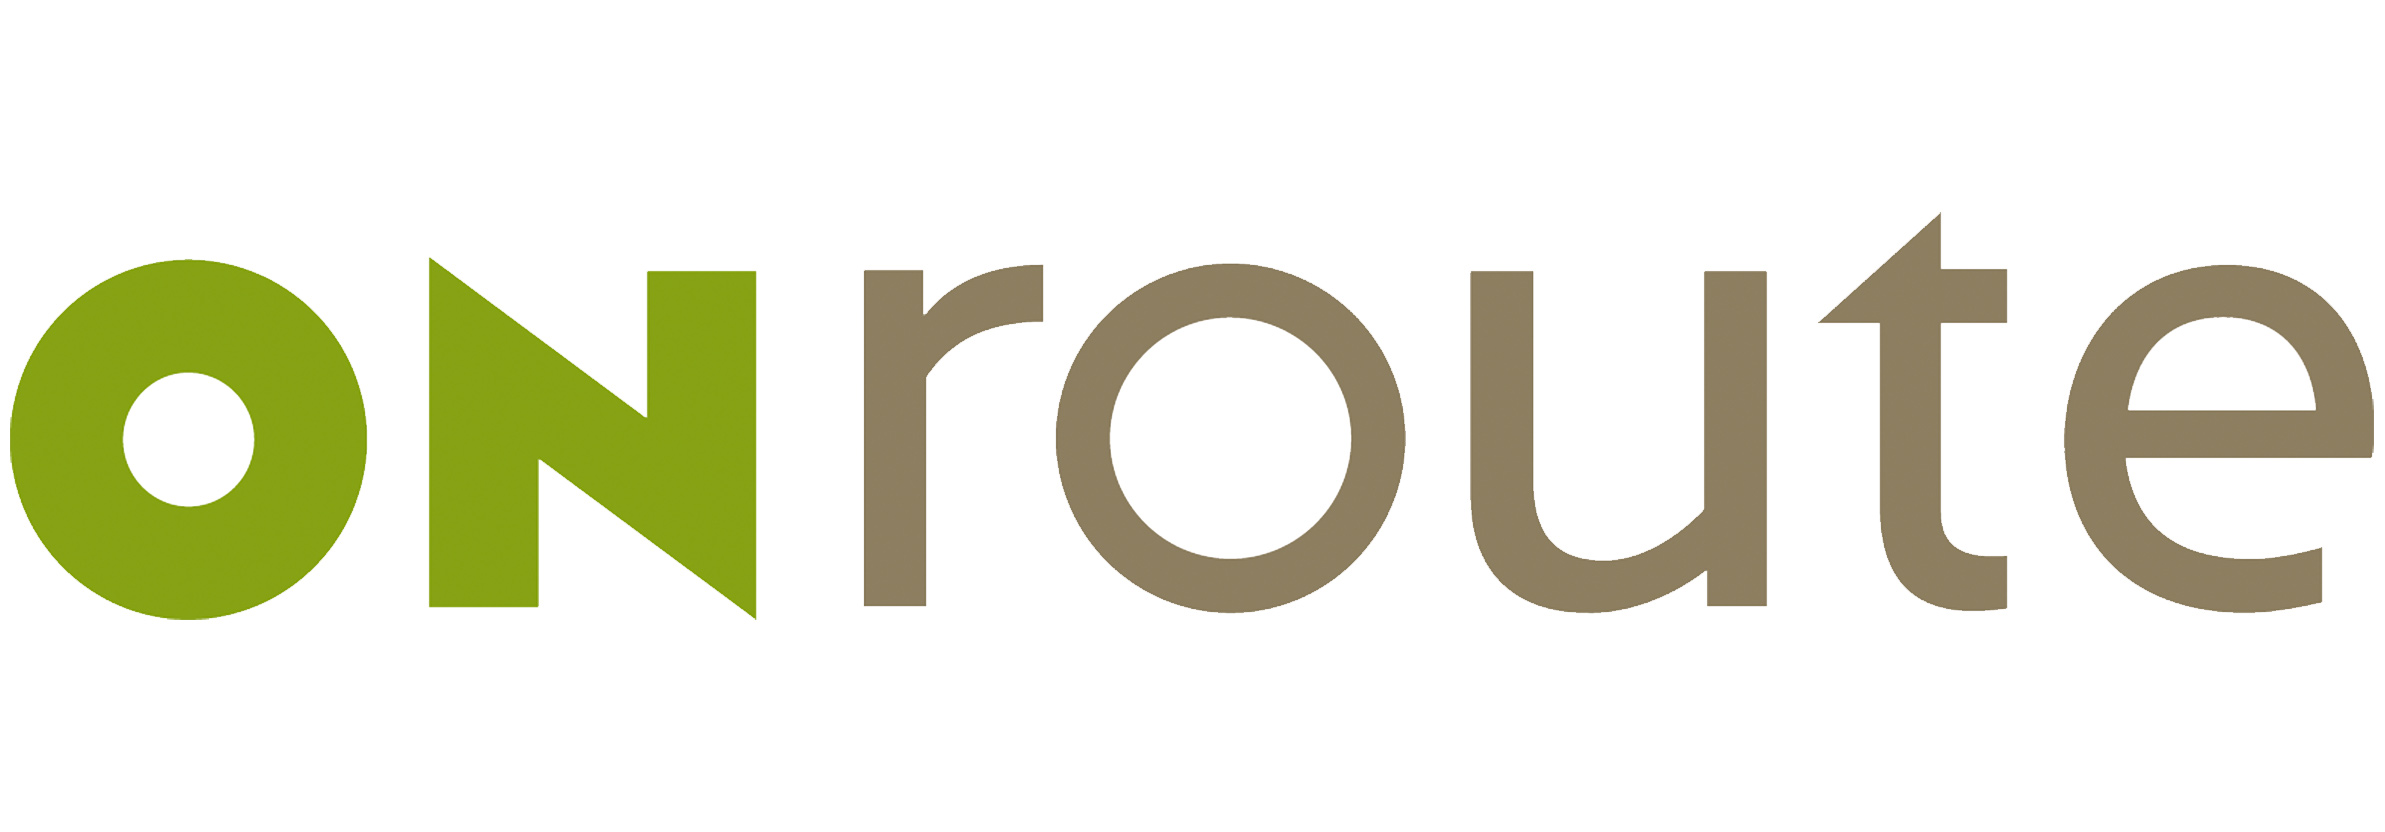 ONroute Extends Free Coffee for Truck Drivers to Every Wednesday Through July 1, 2020